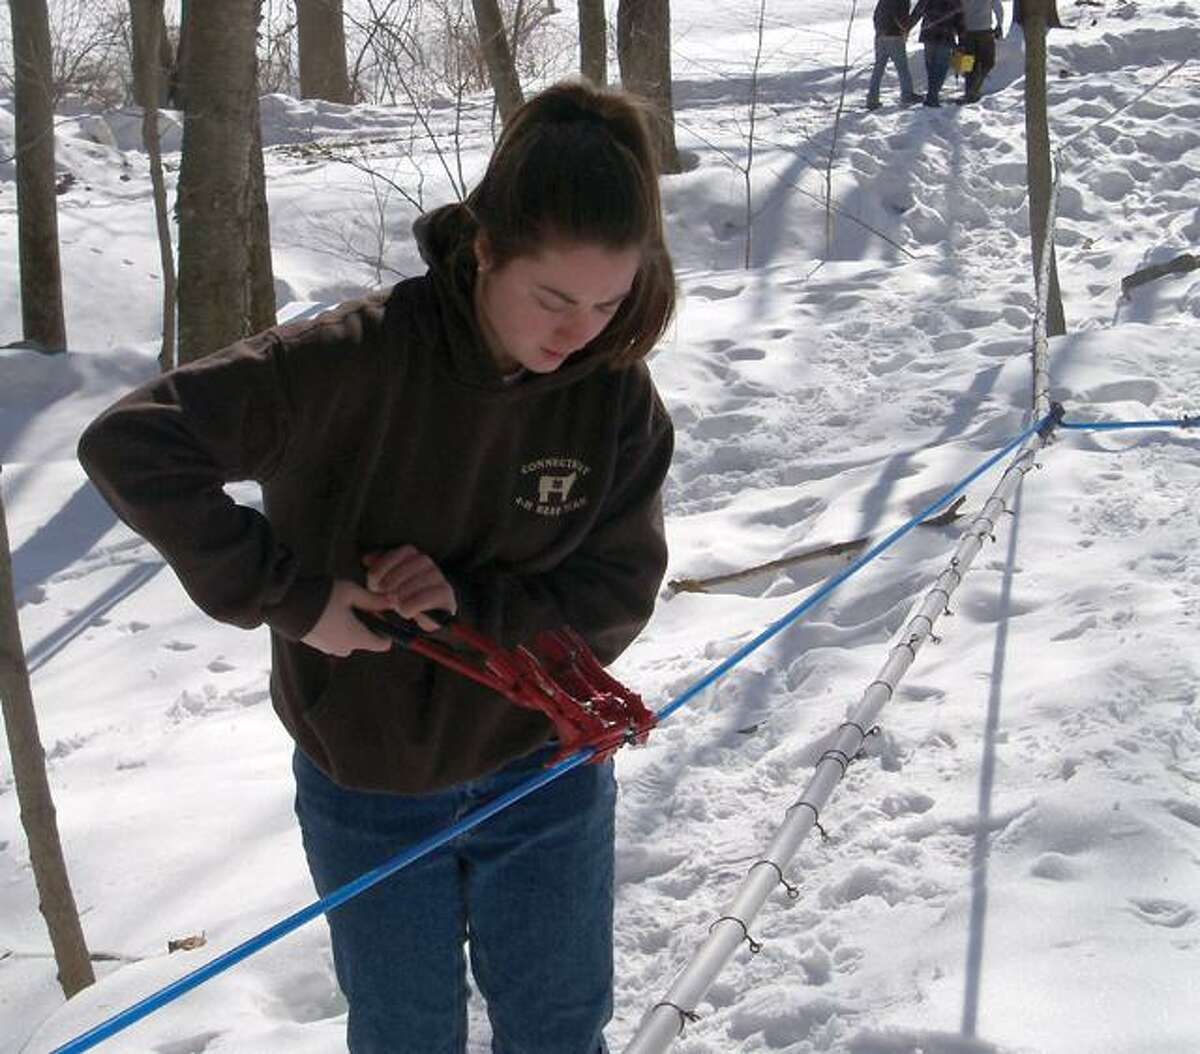 RICKY CAMPBELL/ Register CitizenSuzie Theriault, a junior at Wamogo Regional High School, works on the line after the trees are tapped for syrup right off Route 202. The school sells the syrup once it's all collected.